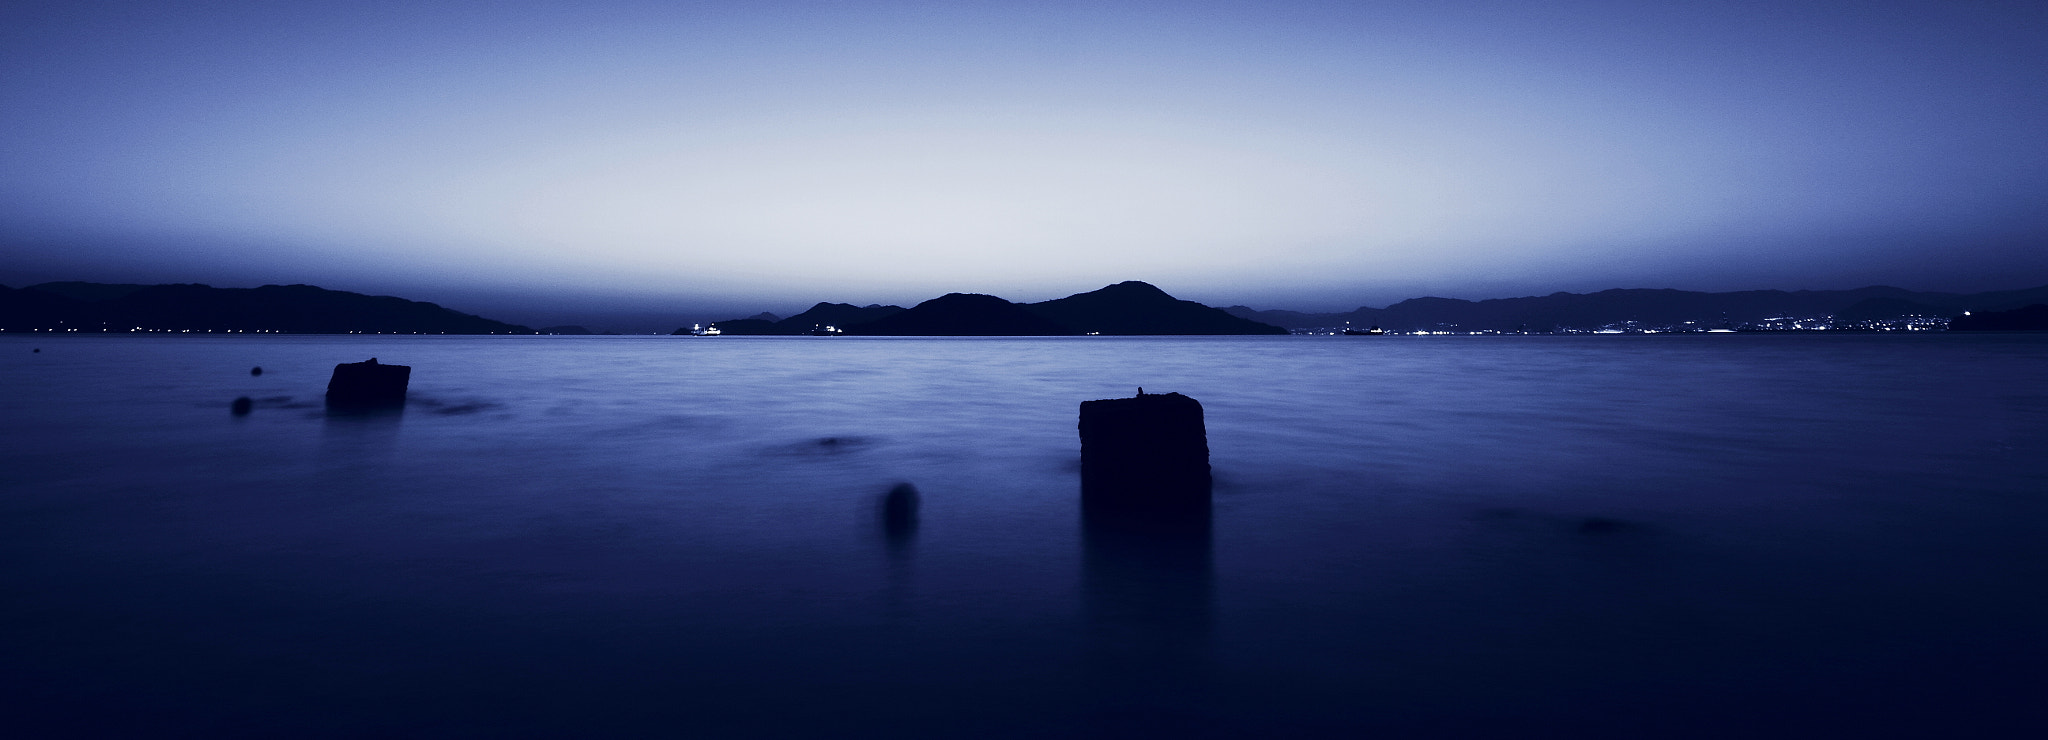 Photograph Untitled by makoto isa on 500px